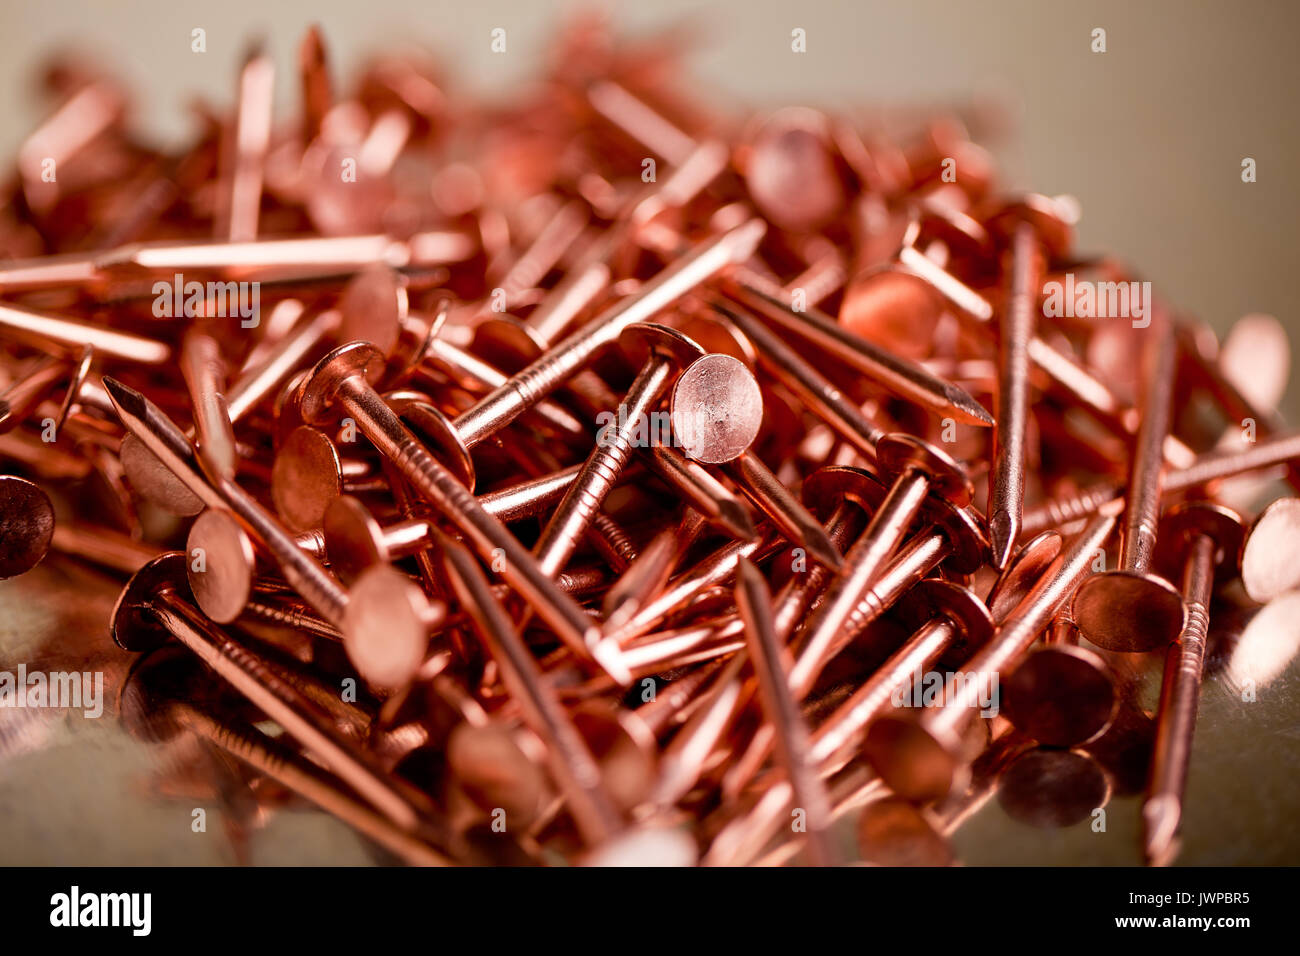 Copper Nails on Galvanized Steel Background With Shallow Focus - Stock Image